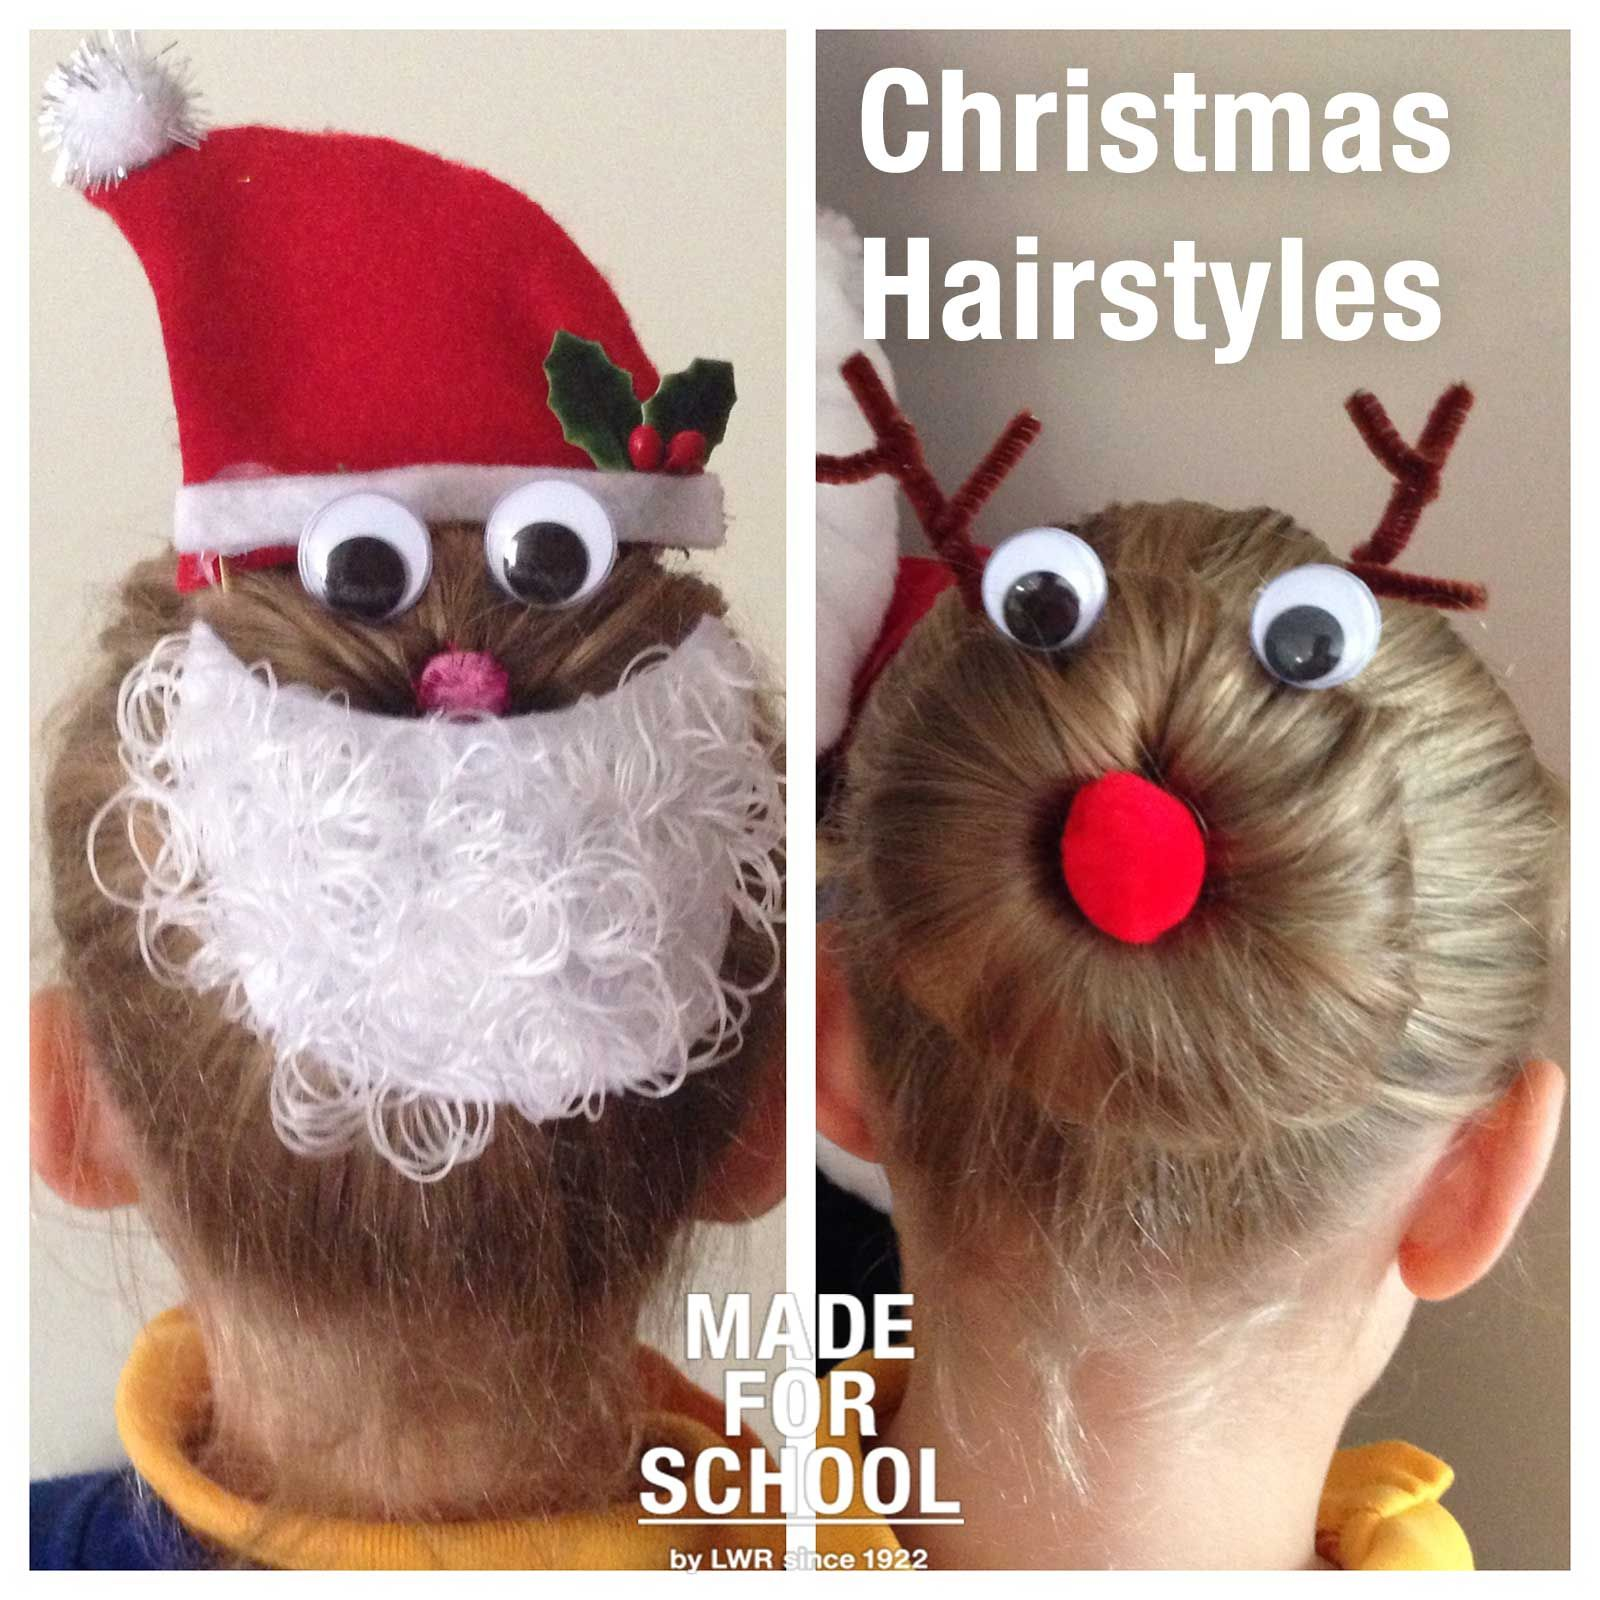 Christmas Hairstyles For Girls.Christmas Hairstyles For Girls Check Out These Easy And Fun